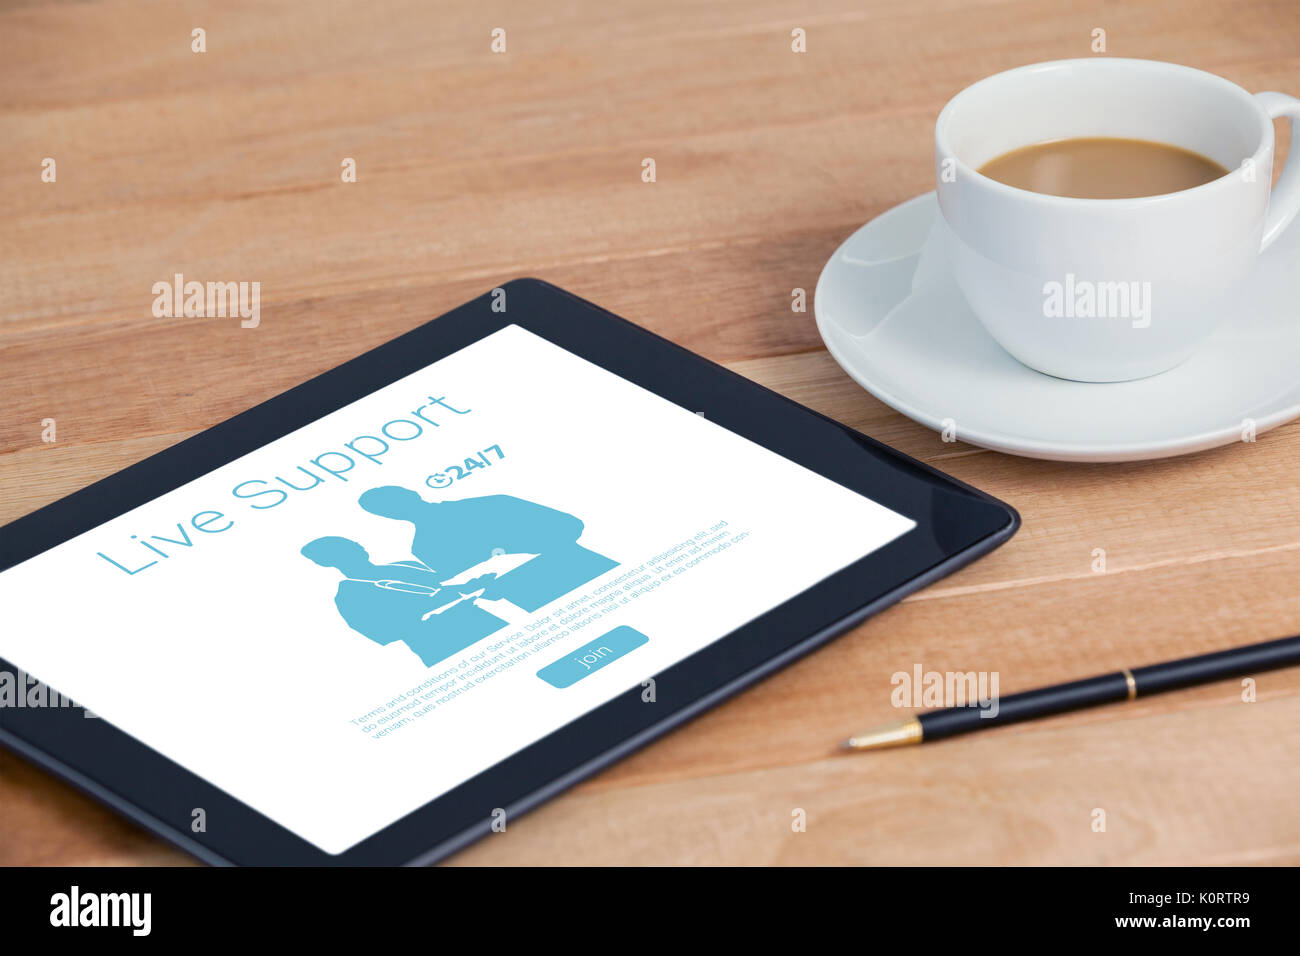 Live support text with human representations against digital tablet with pen and cup of tea Stock Photo